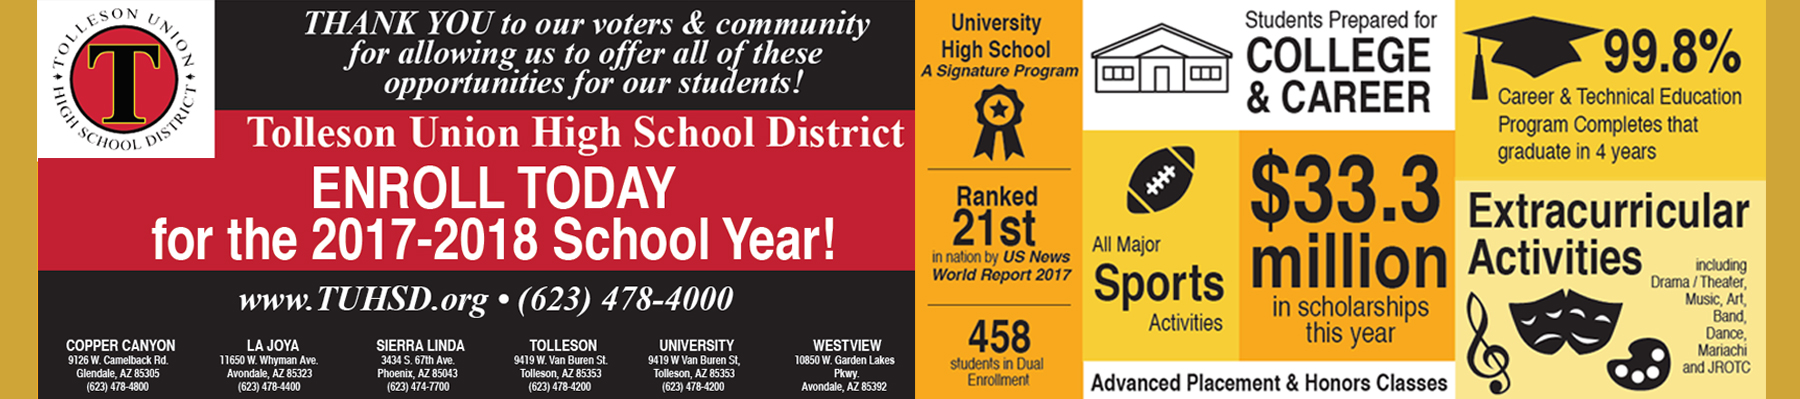 Tolleson District flyer